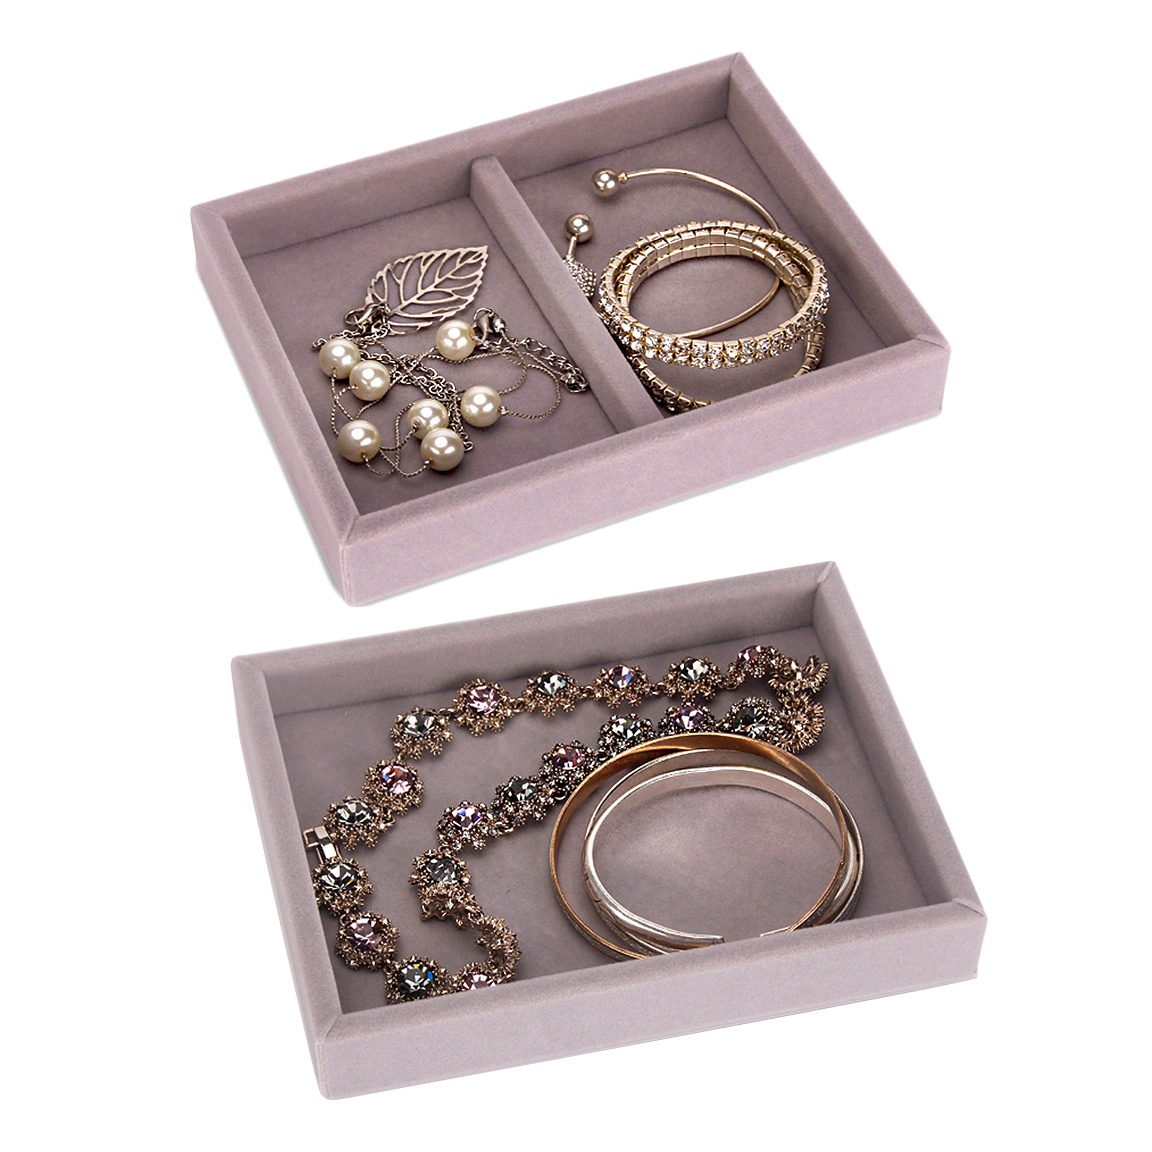 2 Pcs Drawer Diy Rings Bracelets Gift Box Jewelry Storage Tray Jewellery Organizer Earrings Holder Small Size Fit Most Room Space Gray 2 Grid E No 4 Space E No 5 Buy Online